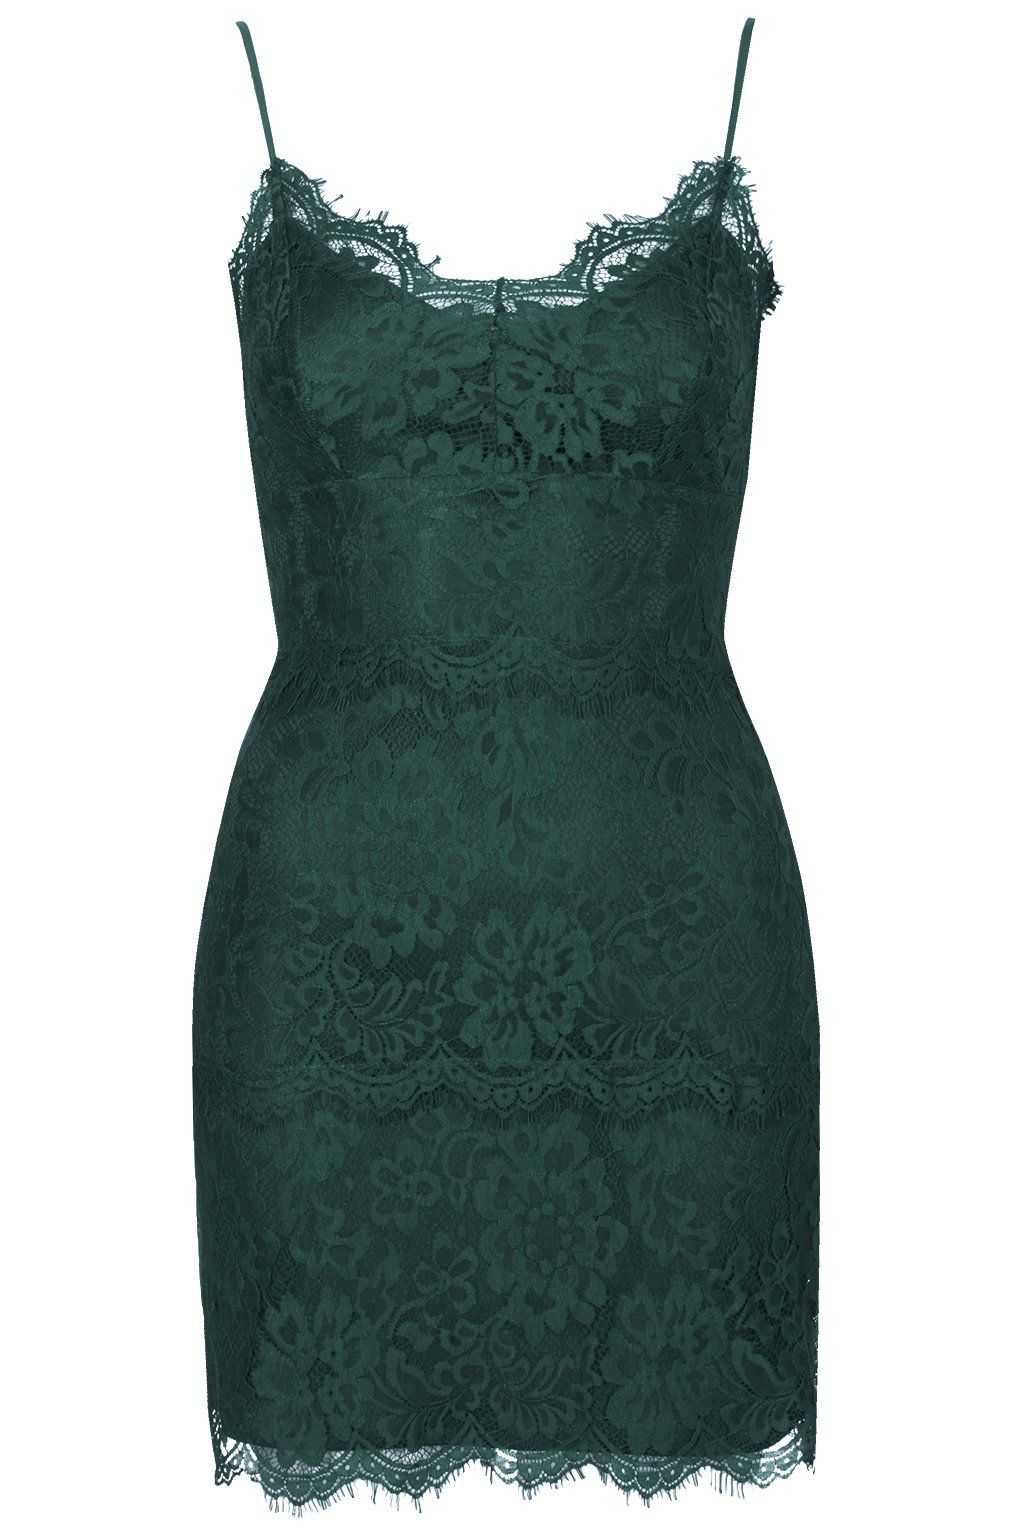 PETITE Lace Bodycon Tunic Dress - Topshop | Dress Me Up | Pinterest